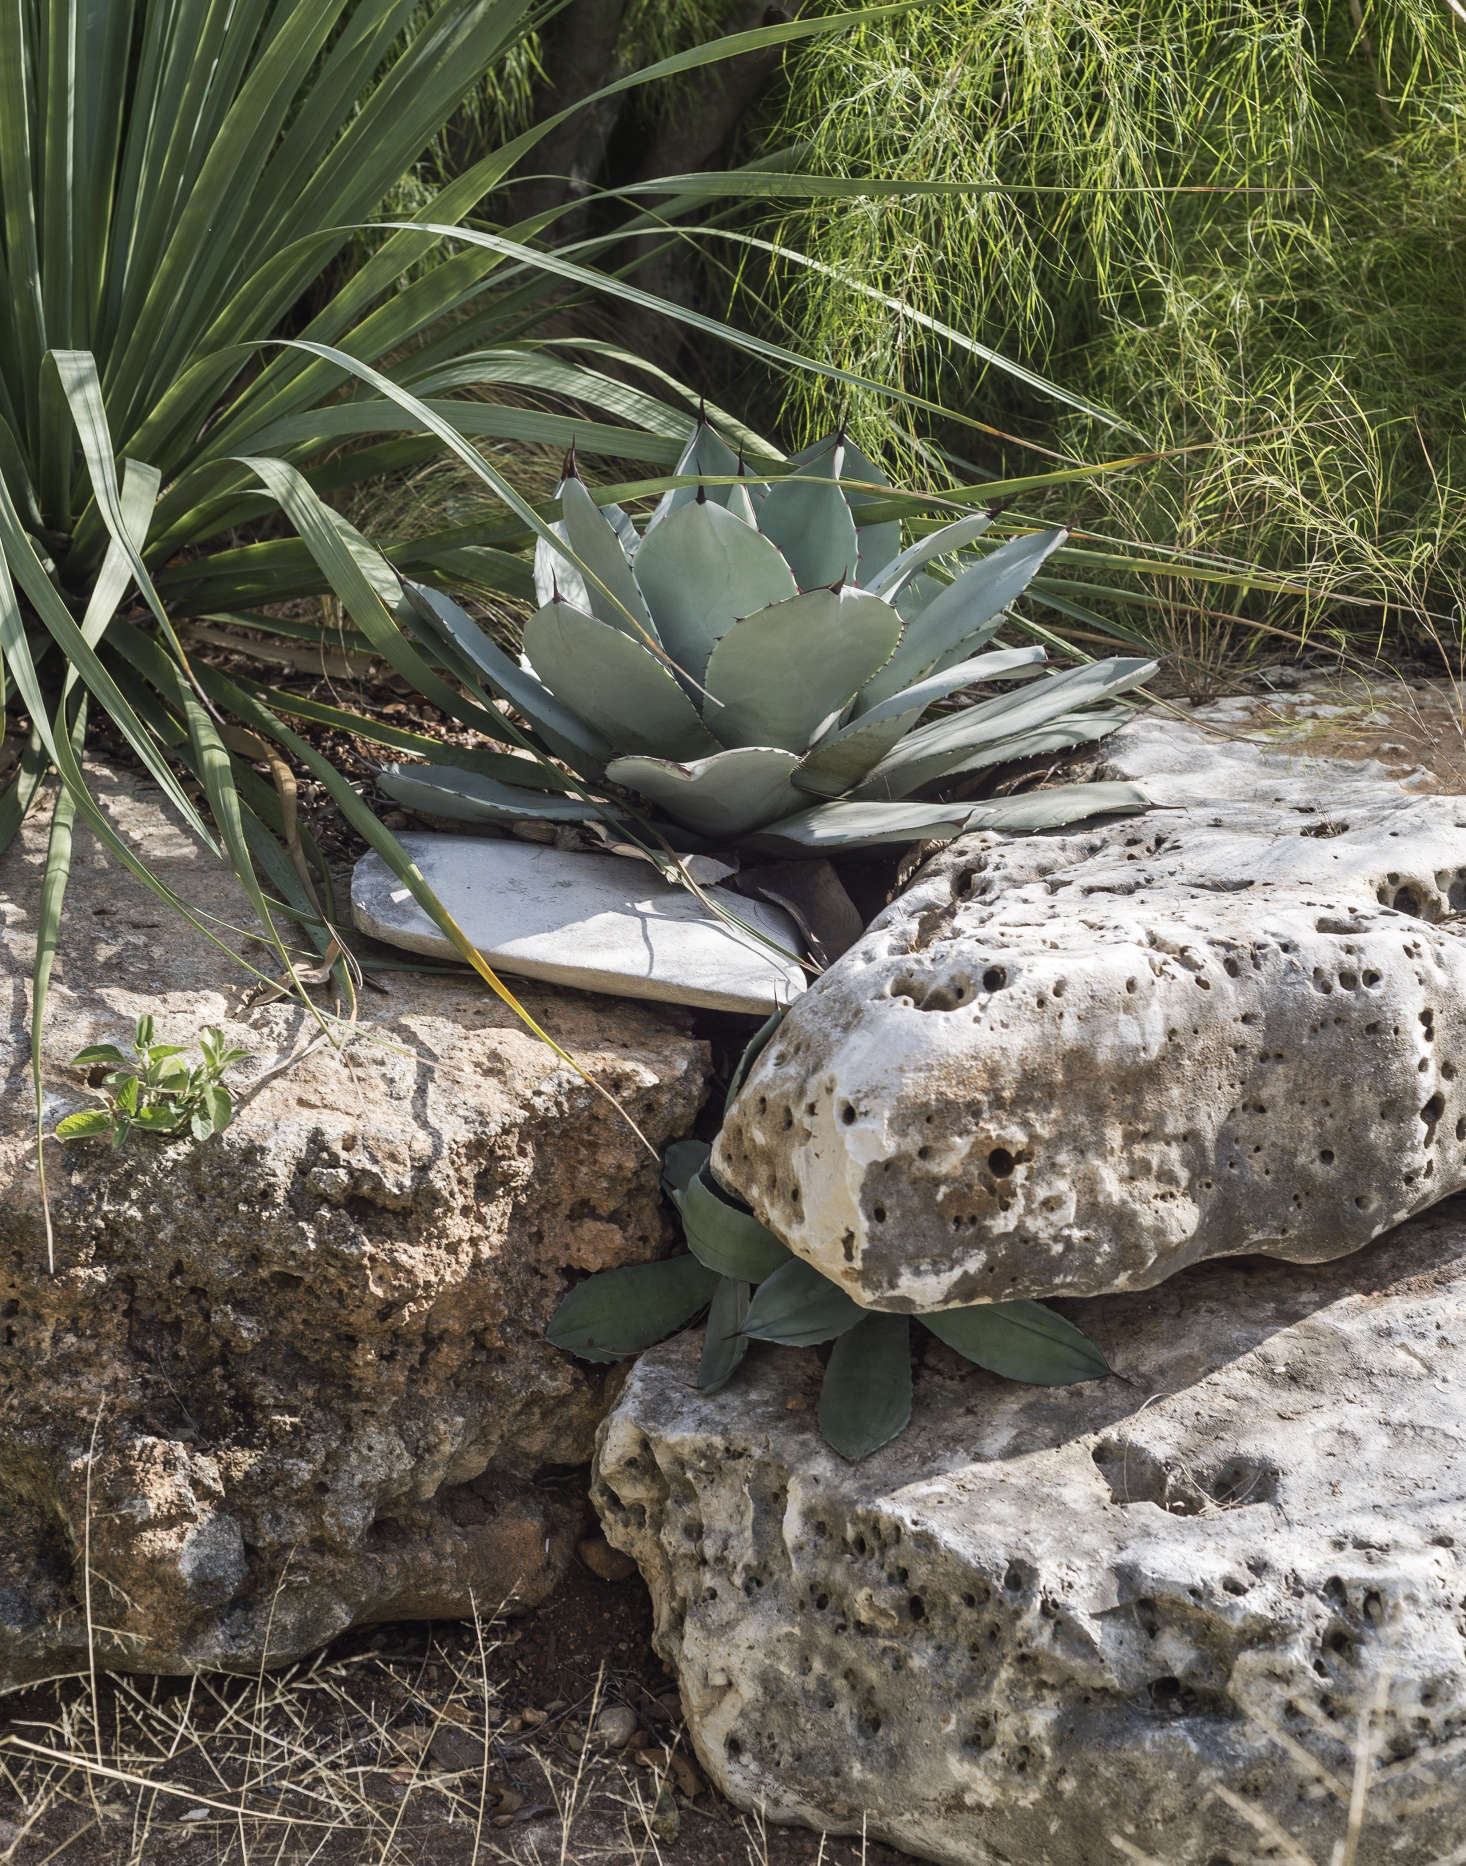 In her Austin, Texas garden, landscape architect Christine Ten Eyck has a thin crust of soil over limestone. To direct rainwater down a slope, she built a series of check dams and low retaining walls. Photograph by Matthew Williams for Gardenista.